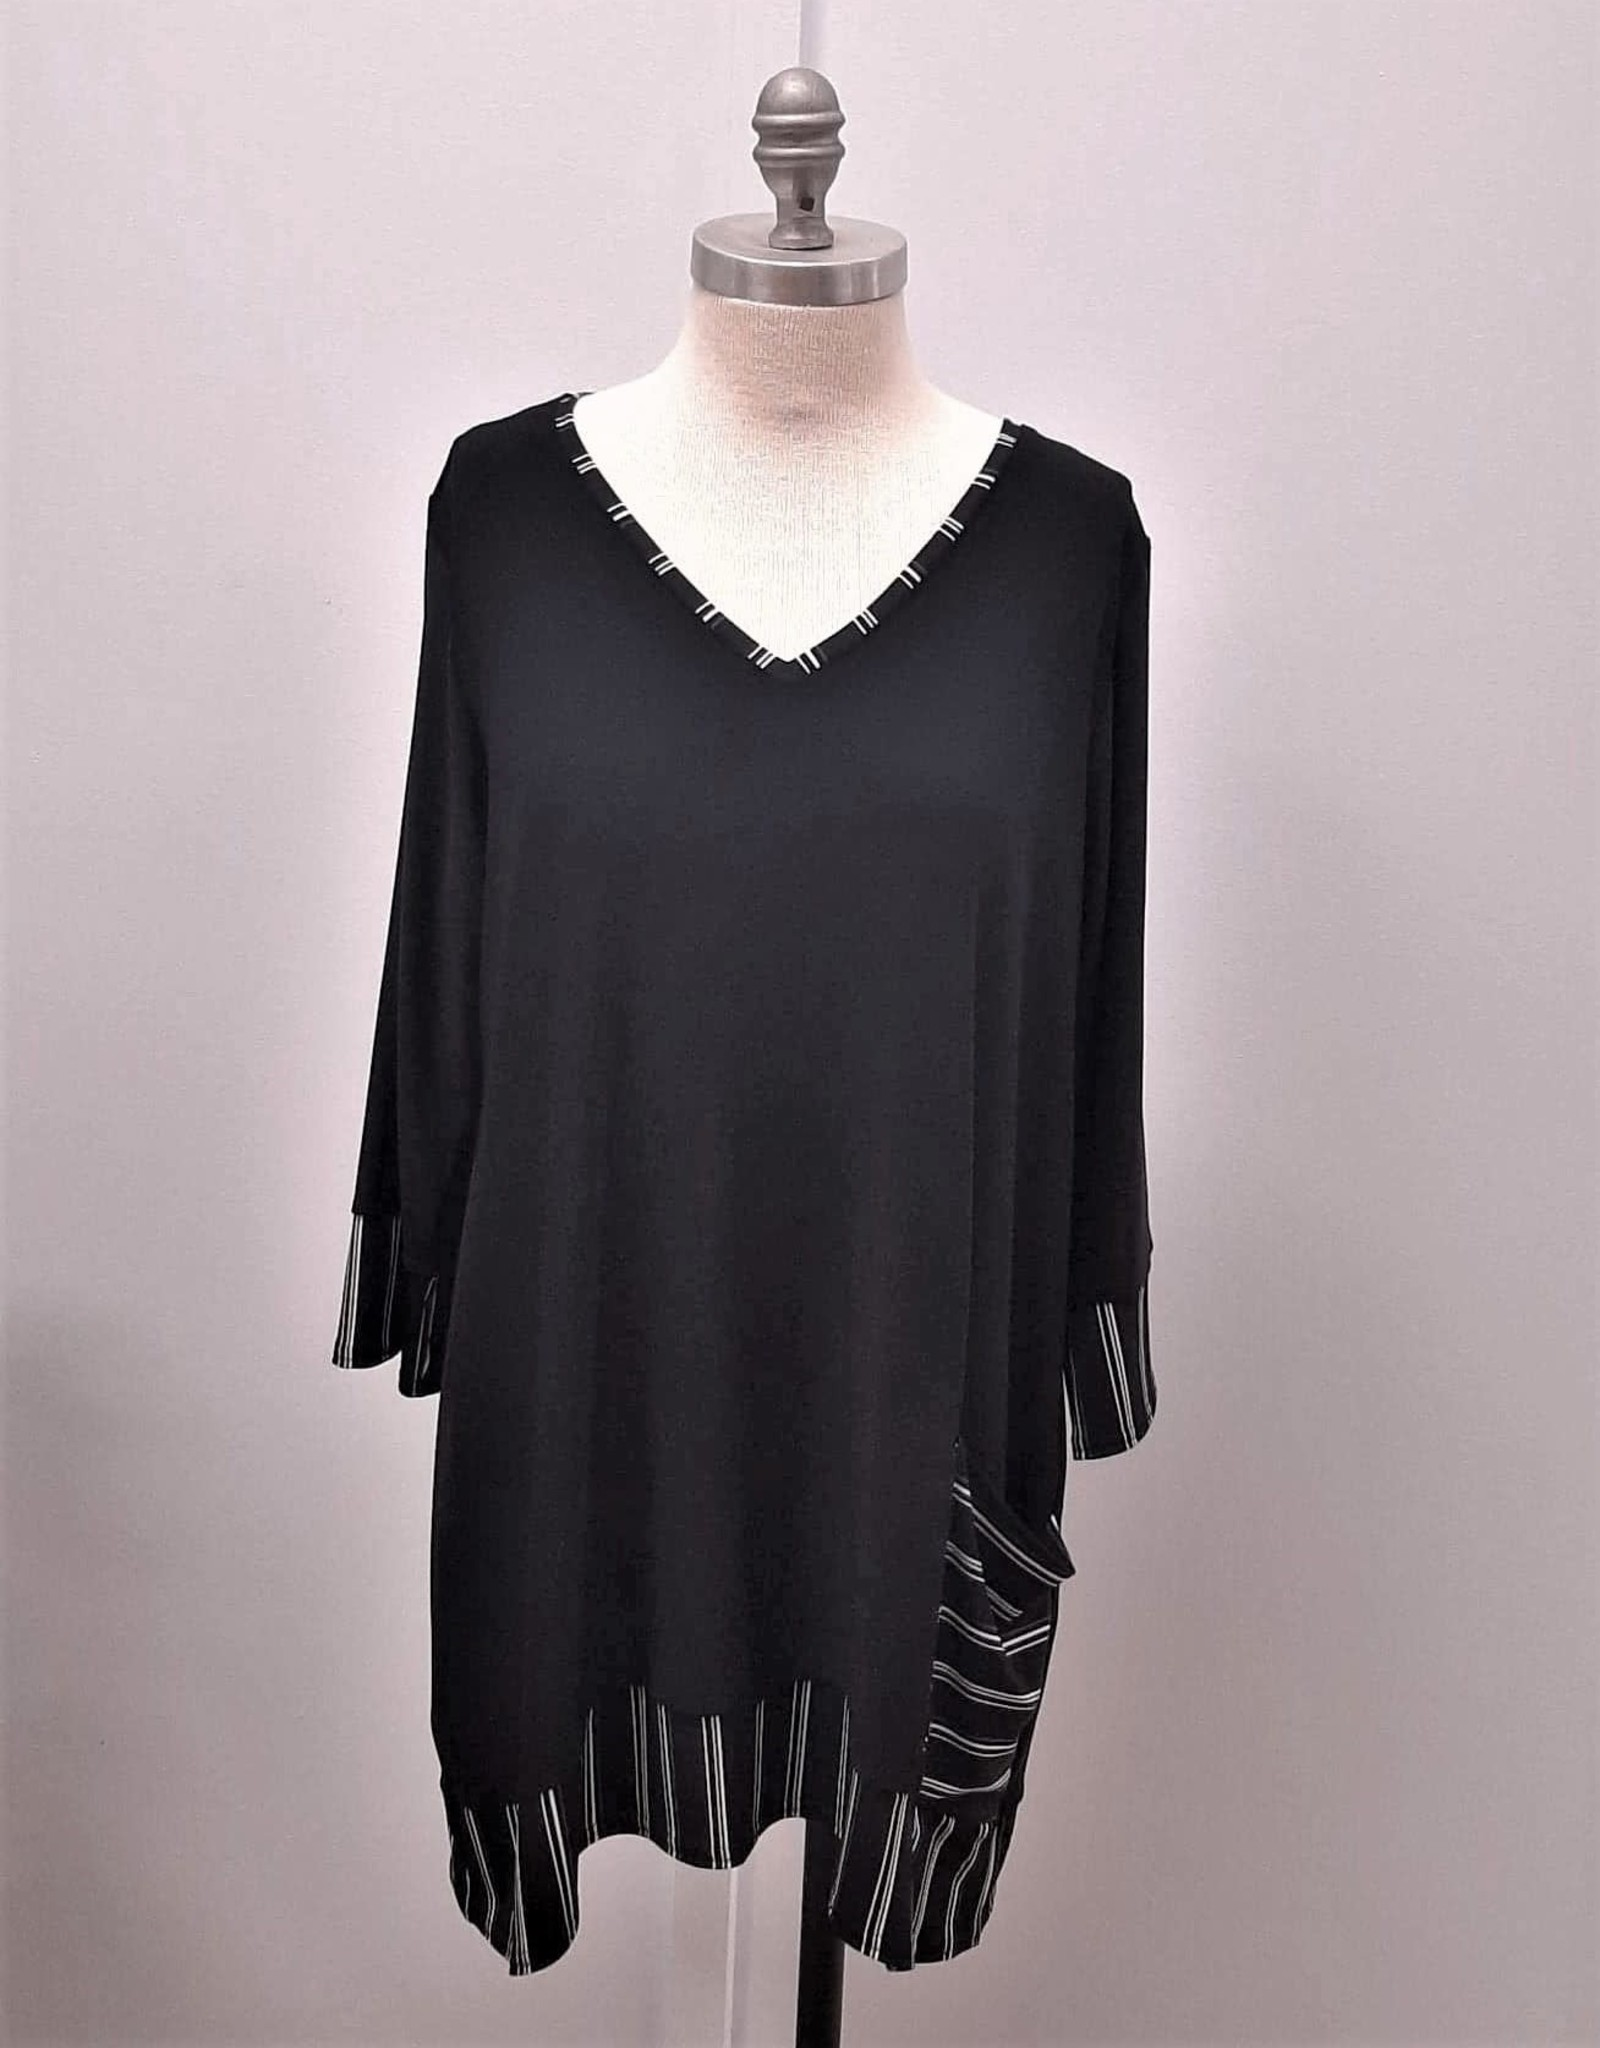 Sympli Match Tunic - Size 12 (Consignment)